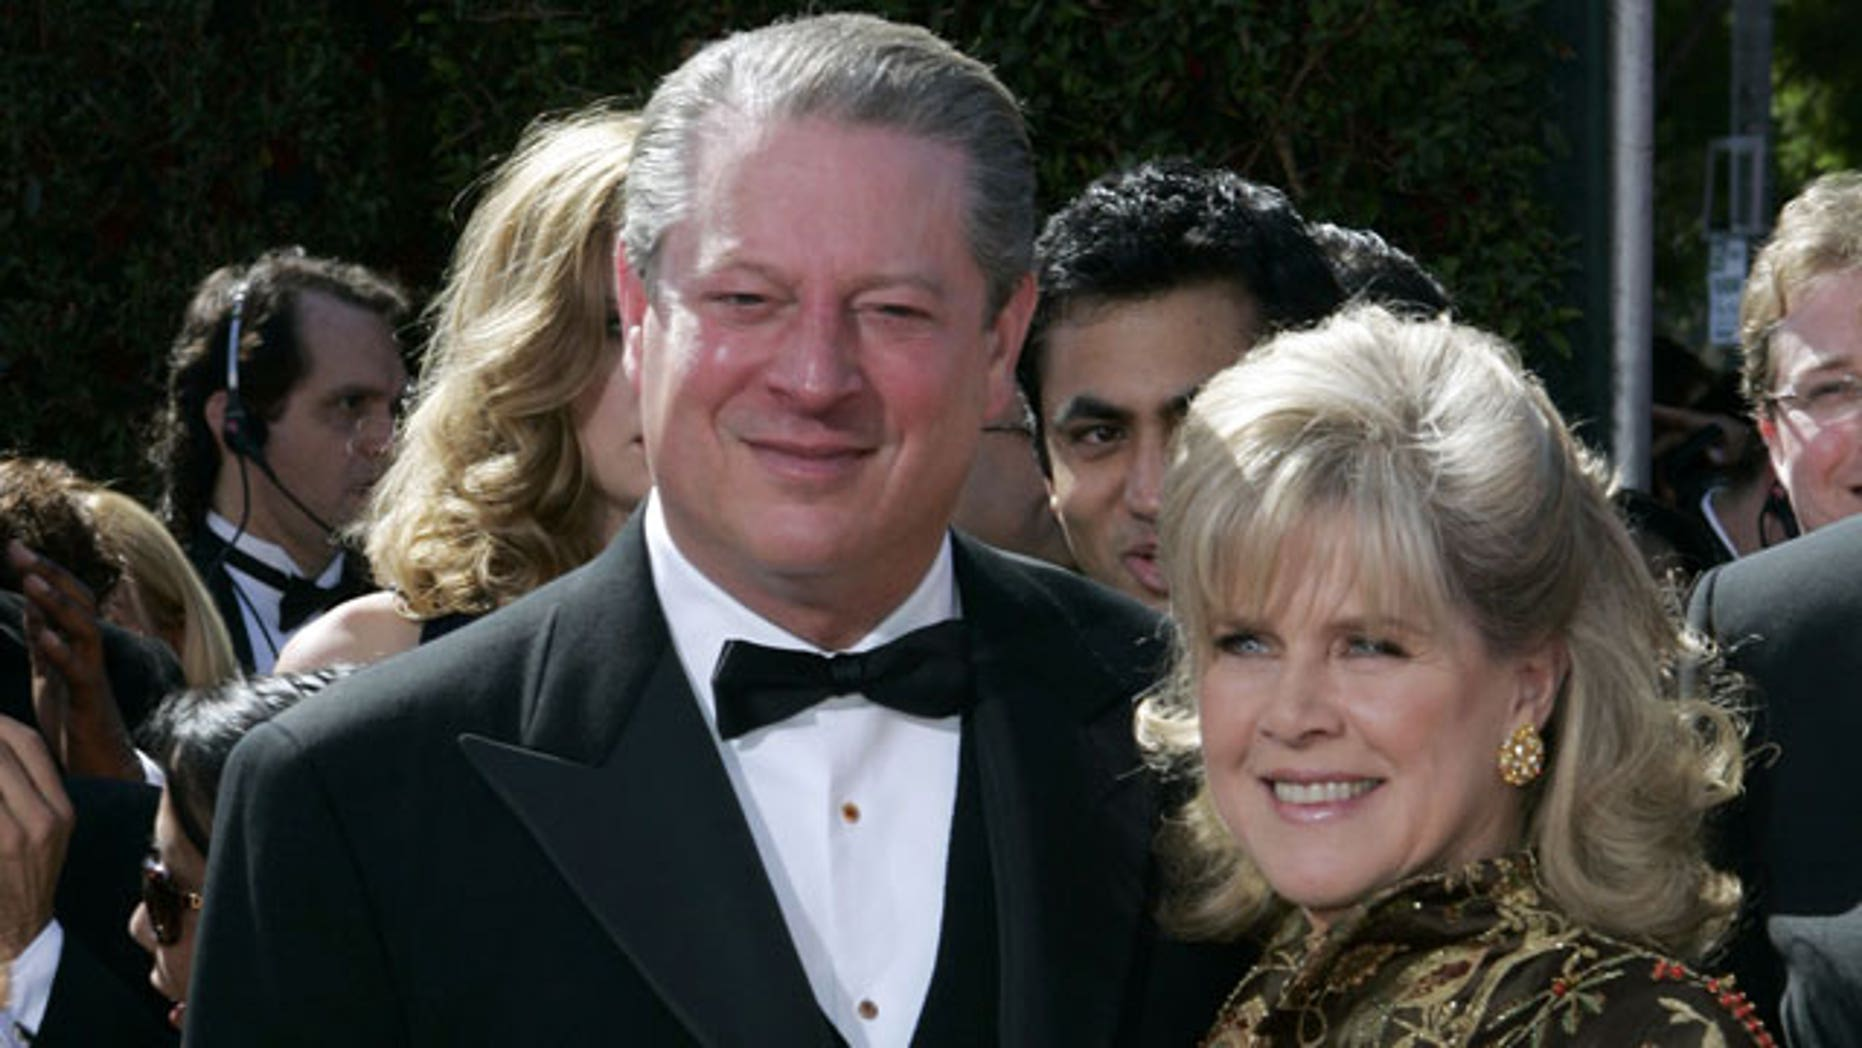 In this Sept. 16, 2007 file photo, former Vice President Al Gore and his wife, Tipper Gore arrive for the 59th Primetime Emmy Awards at the Shrine Auditorium in Los Angeles.